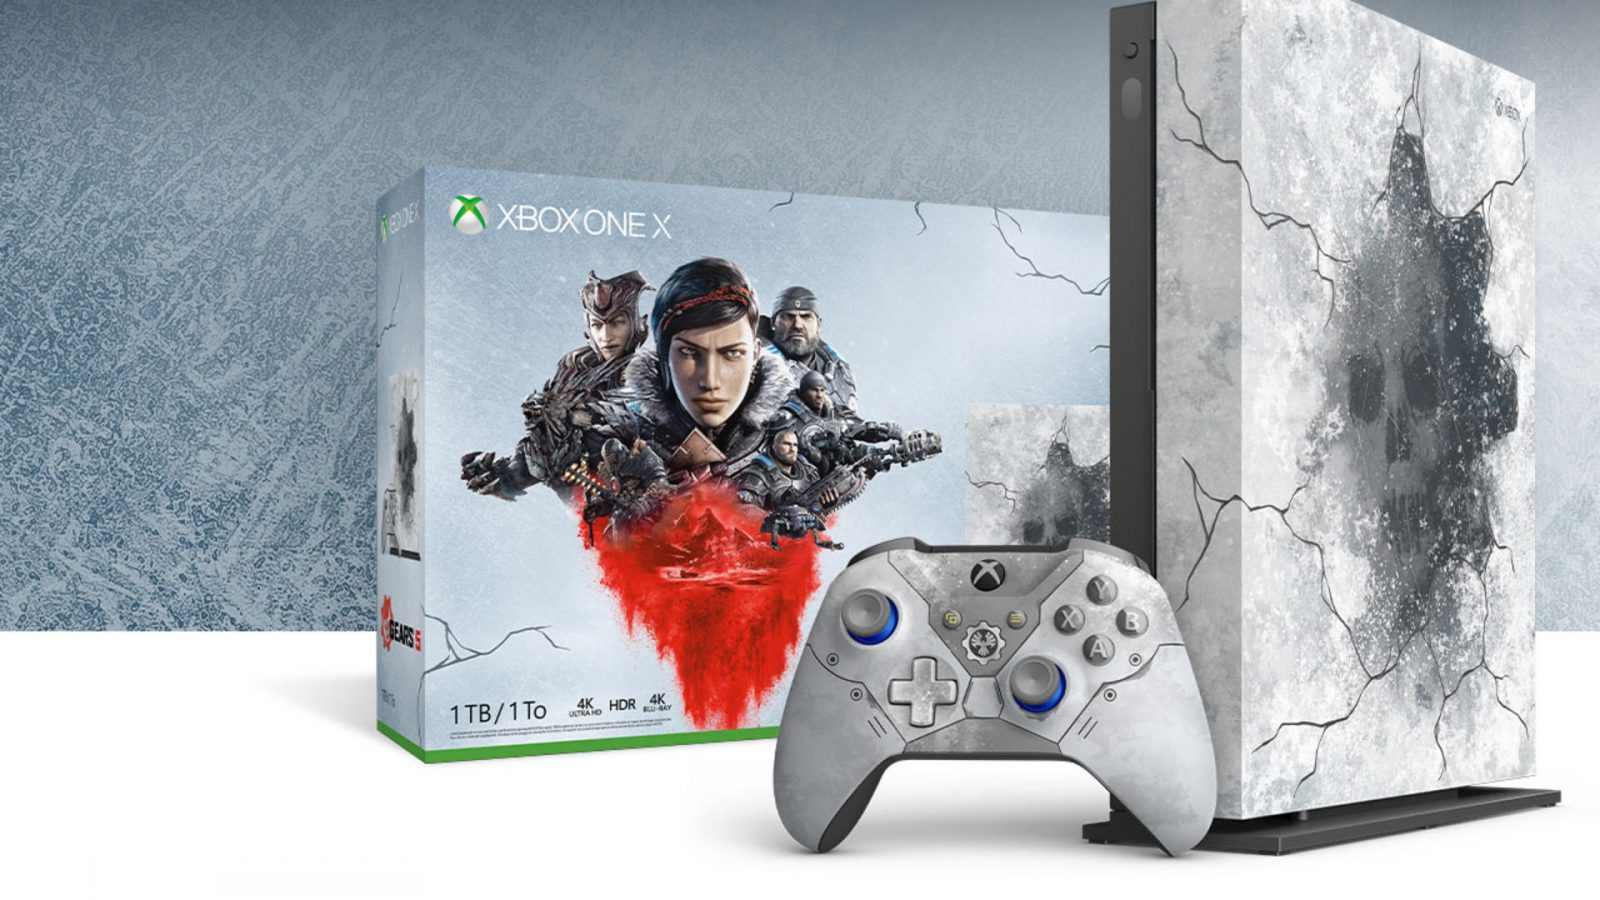 Share Your Favorite Holiday Gaming Memory and Get Entered to Win a Limited Edition Xbox One X